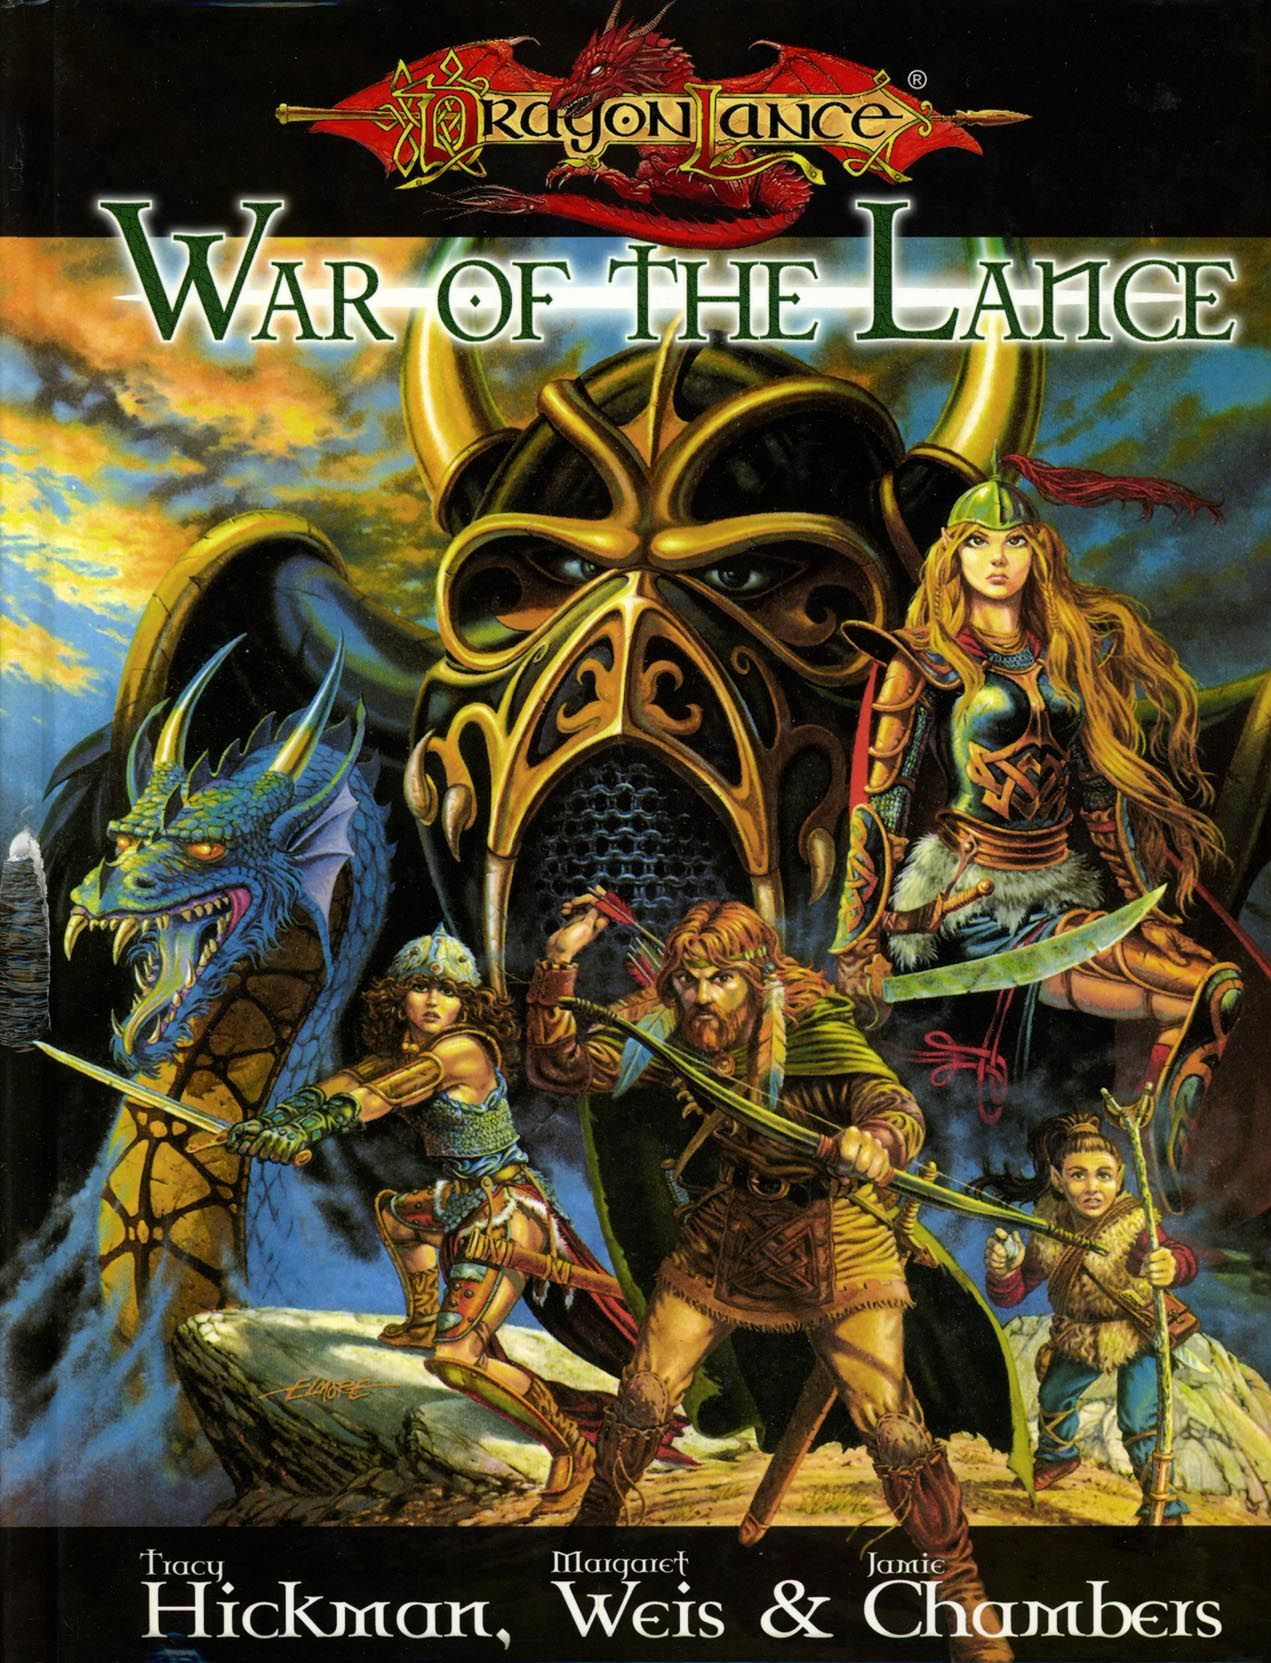 War of the Lance (Book)